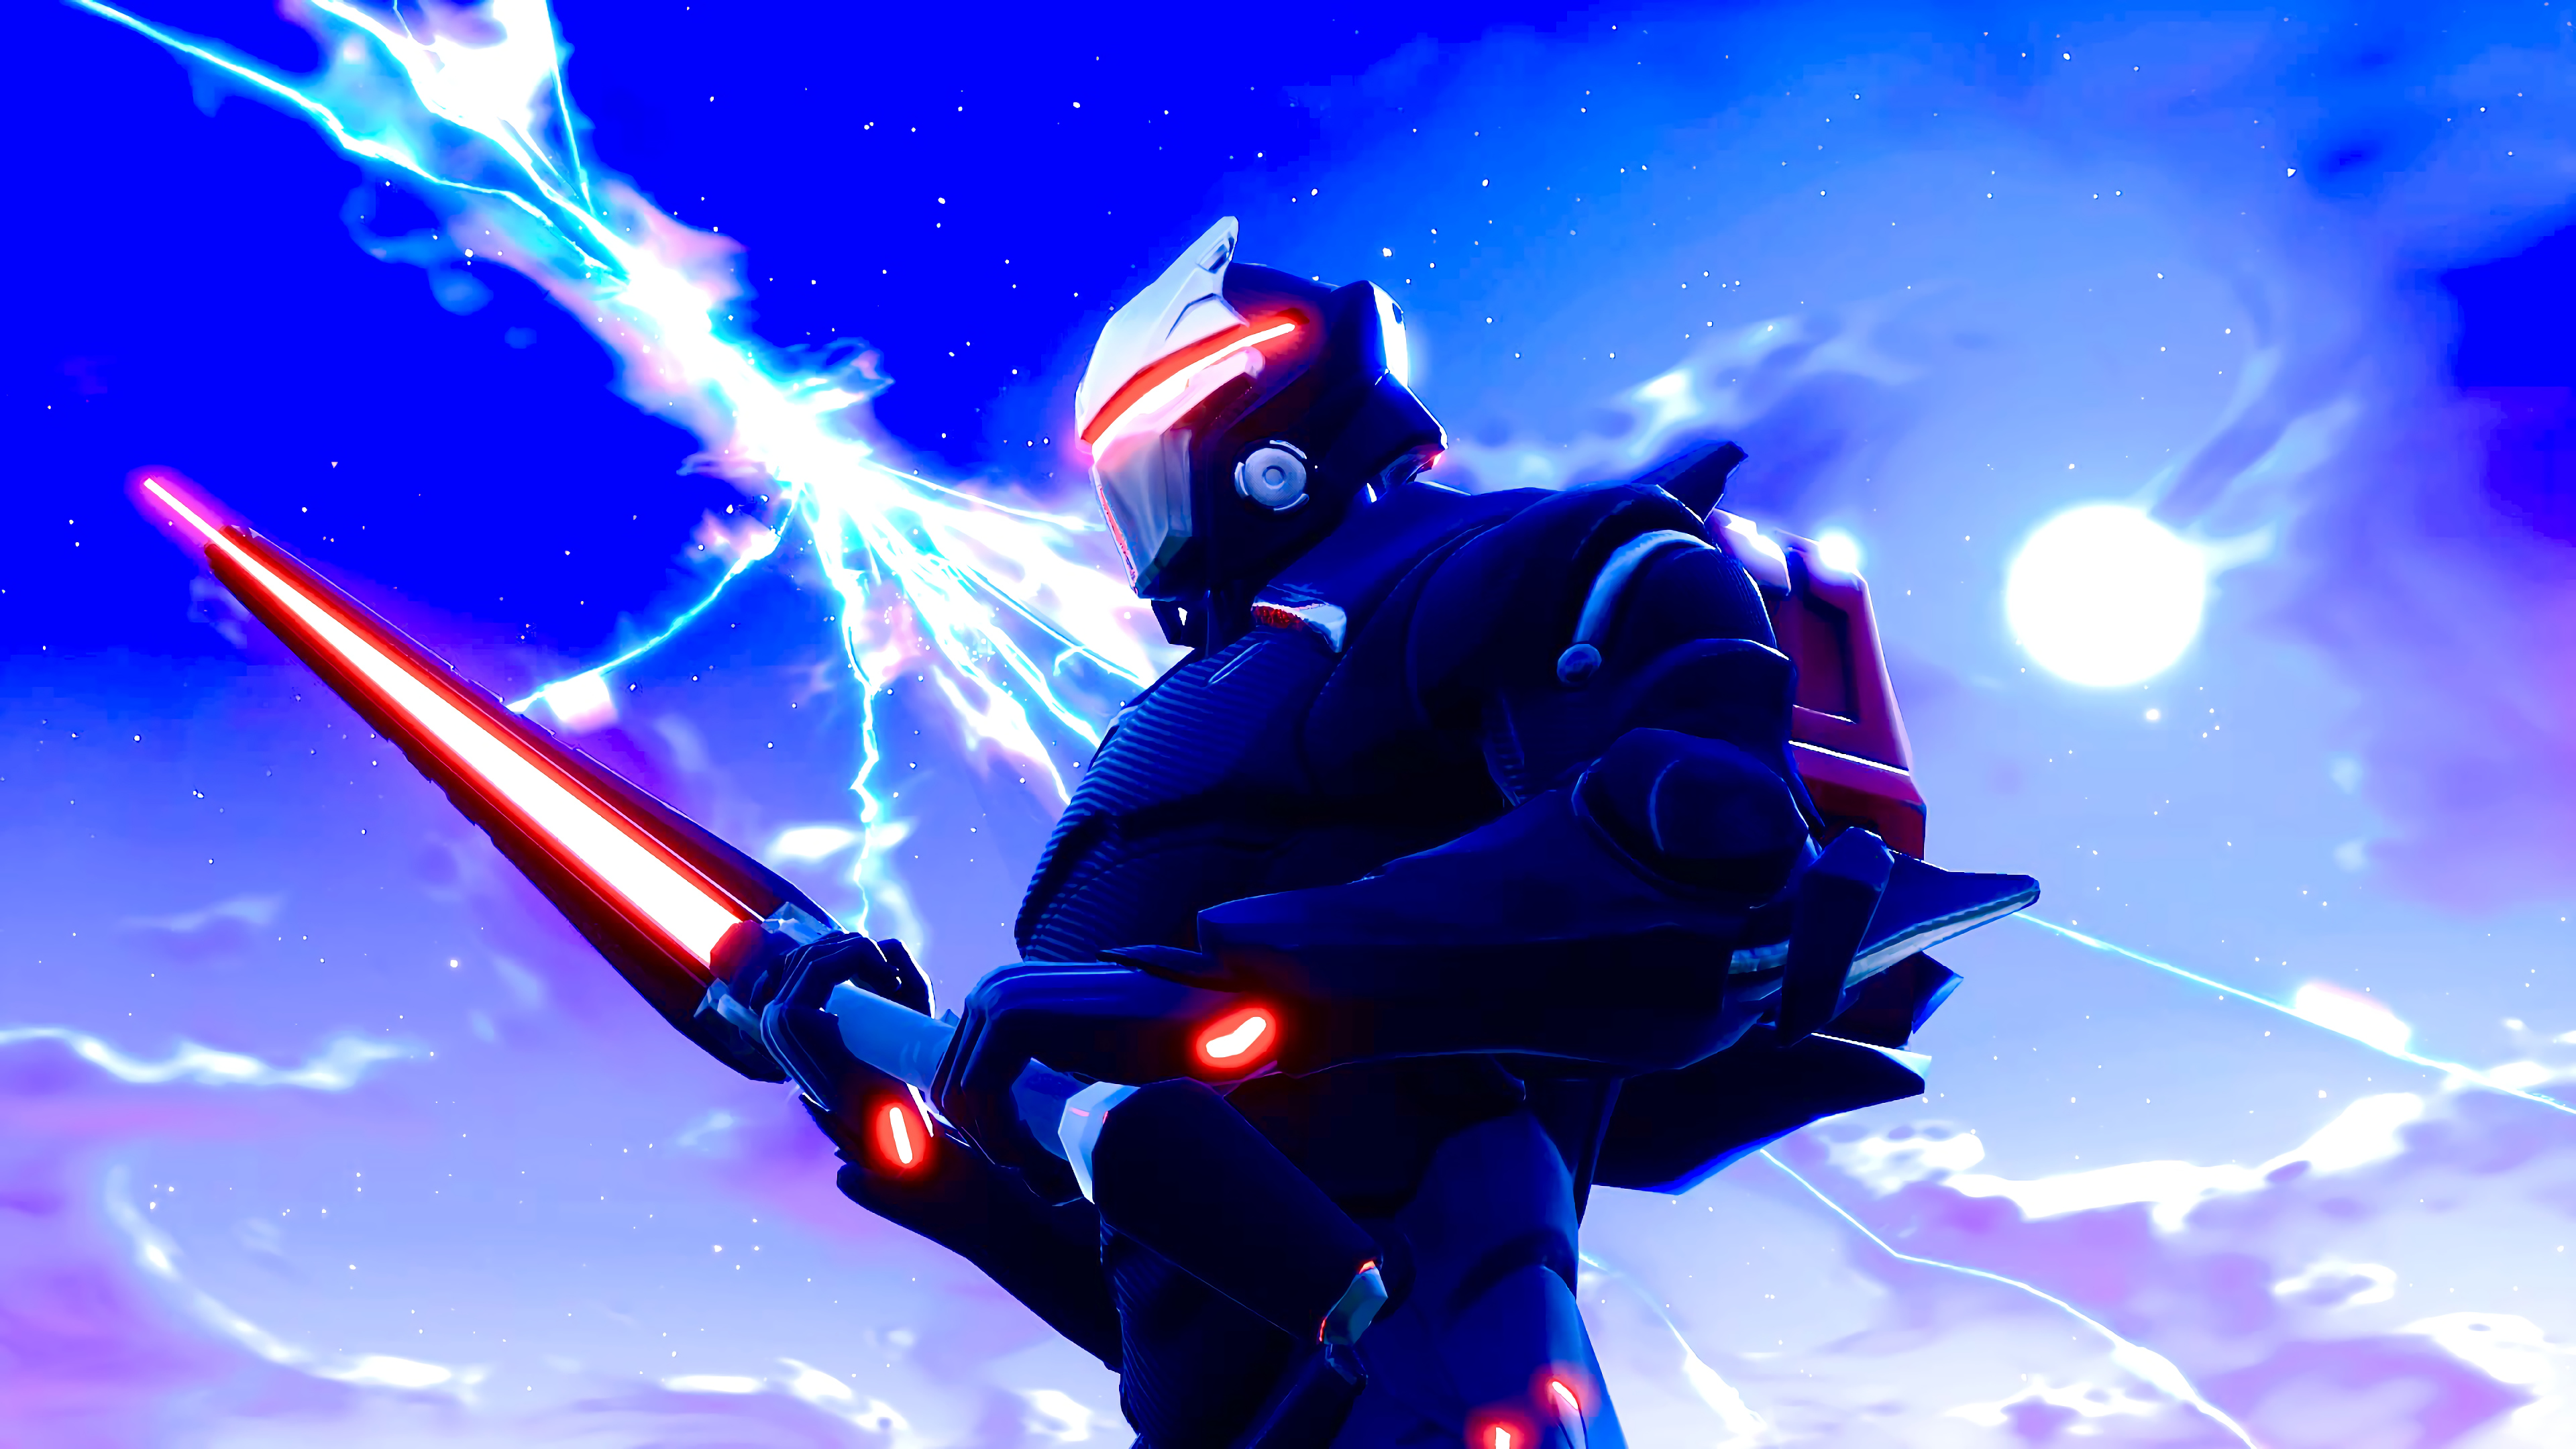 fortnite omega 4k 1537692903 - Fortnite Omega 4k - ps games wallpapers, hd-wallpapers, games wallpapers, fortnite wallpapers, 4k-wallpapers, 2018 games wallpapers